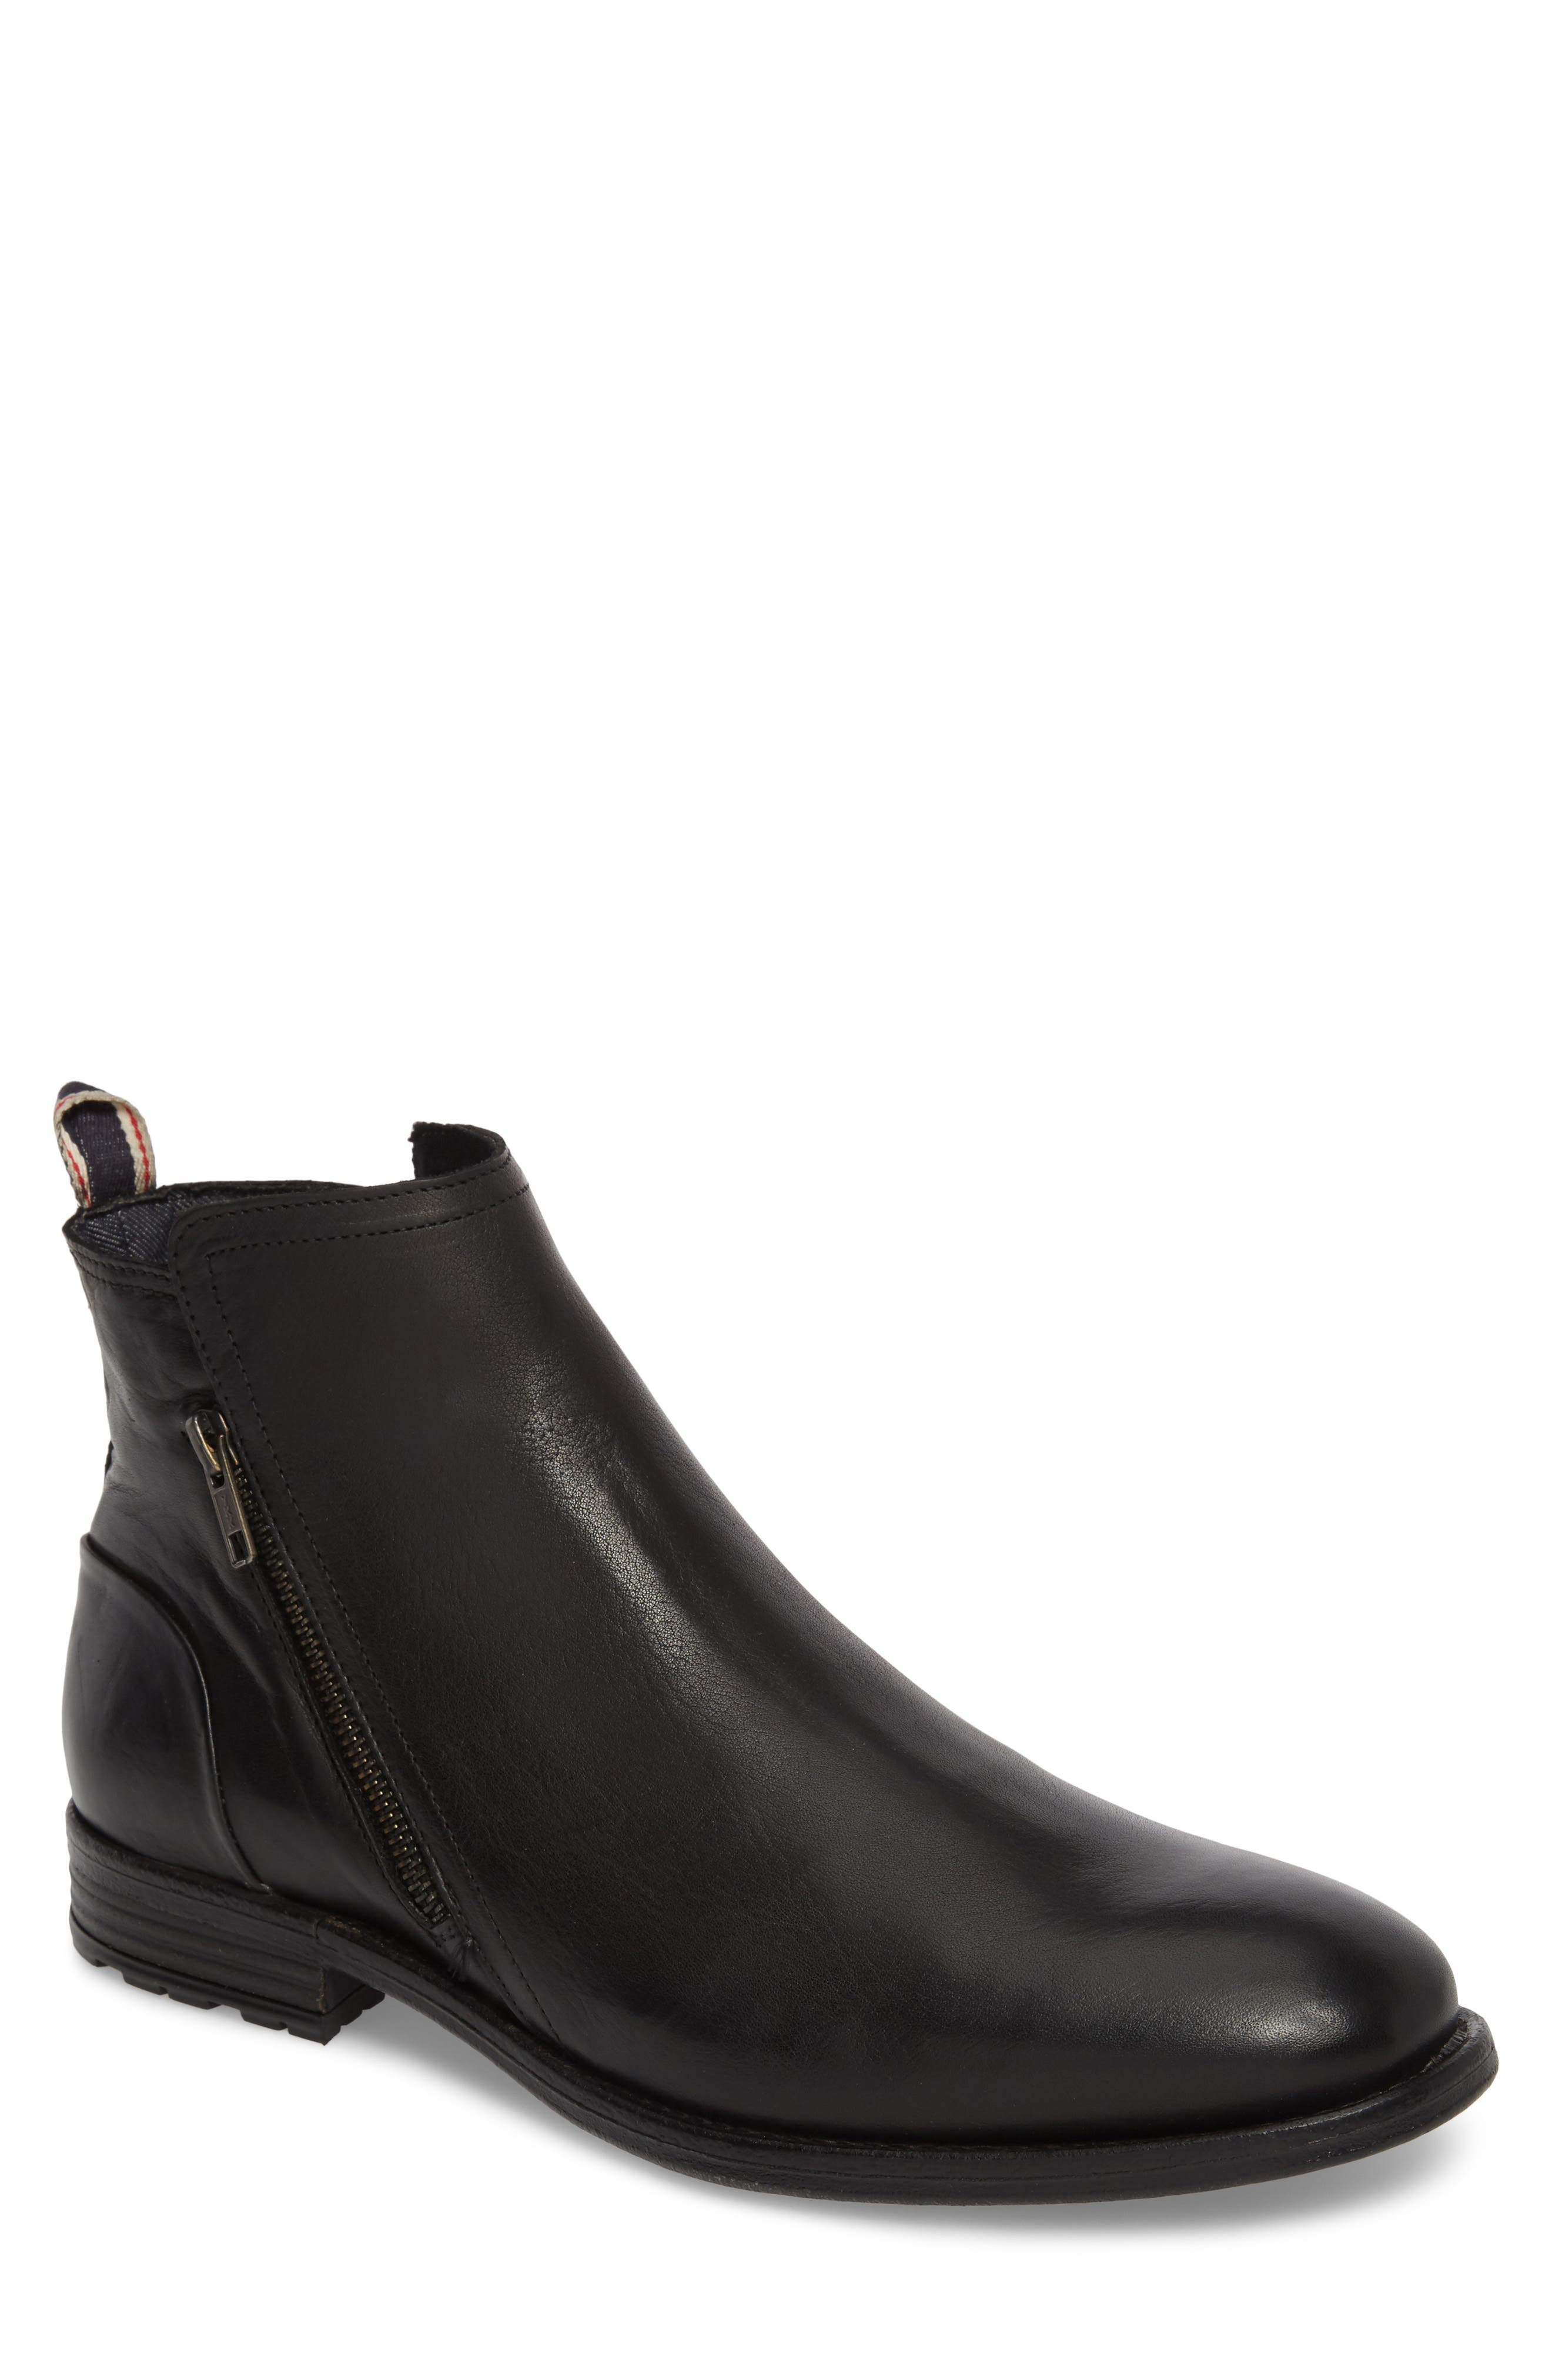 Gerone Zip Boot,                         Main,                         color, Black Leather Fabric